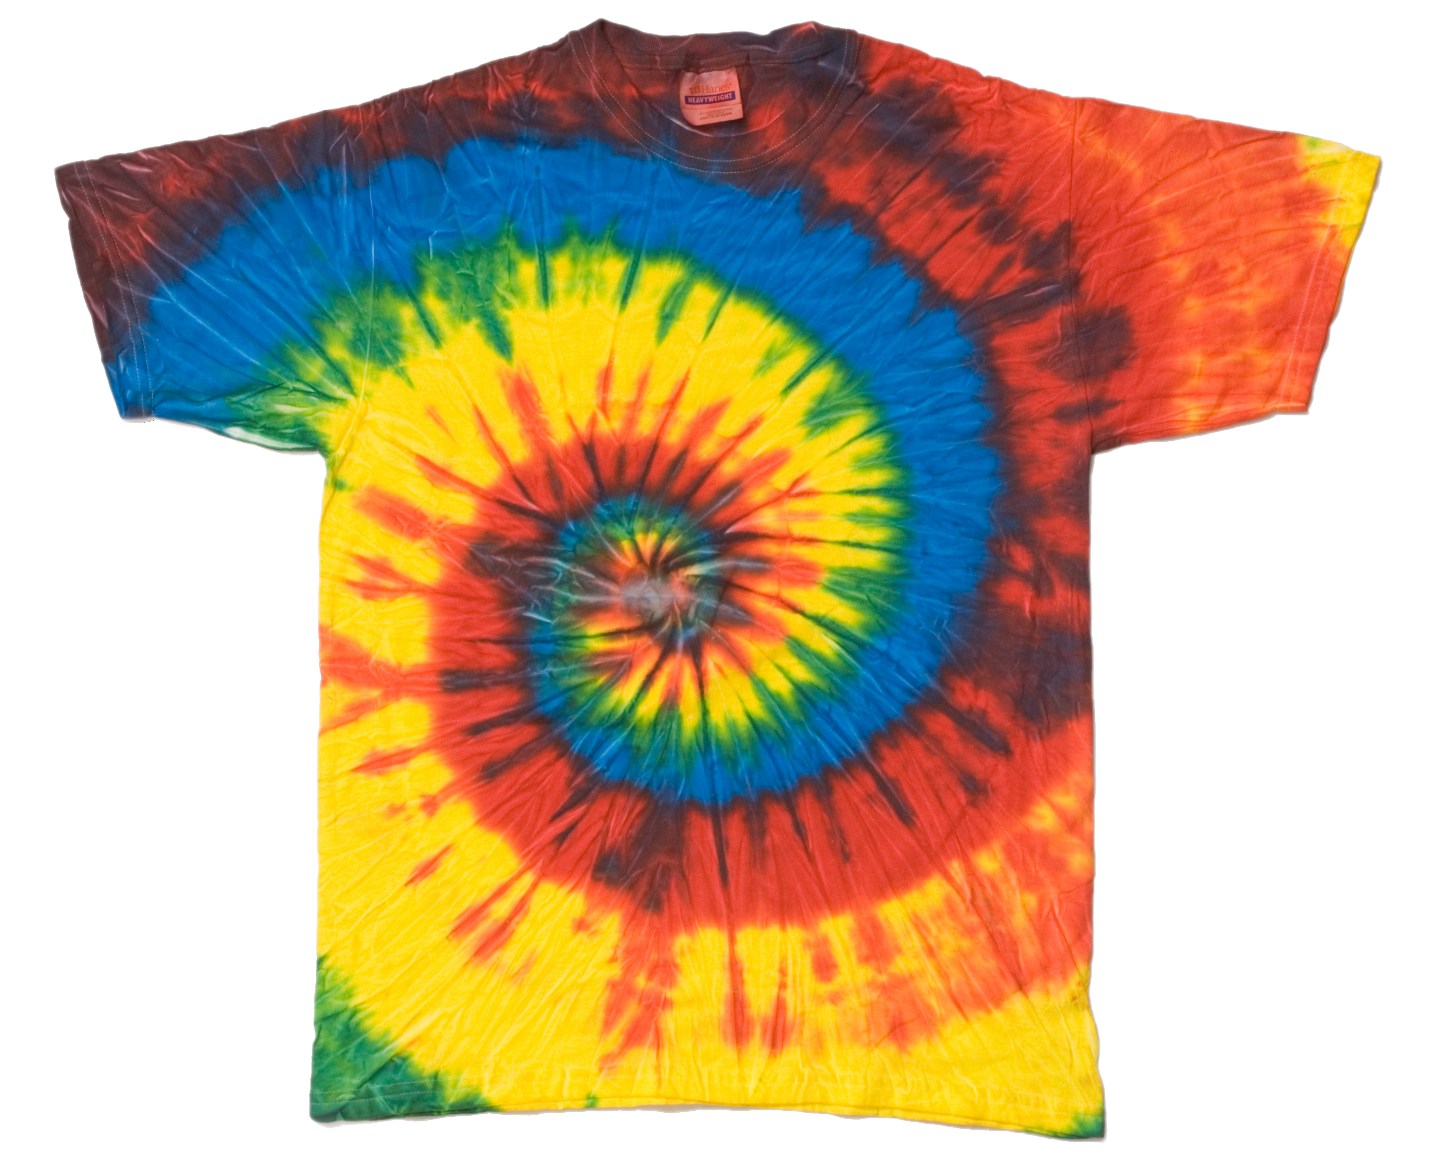 rasta blue tie dye t shirt tie dye space. Black Bedroom Furniture Sets. Home Design Ideas